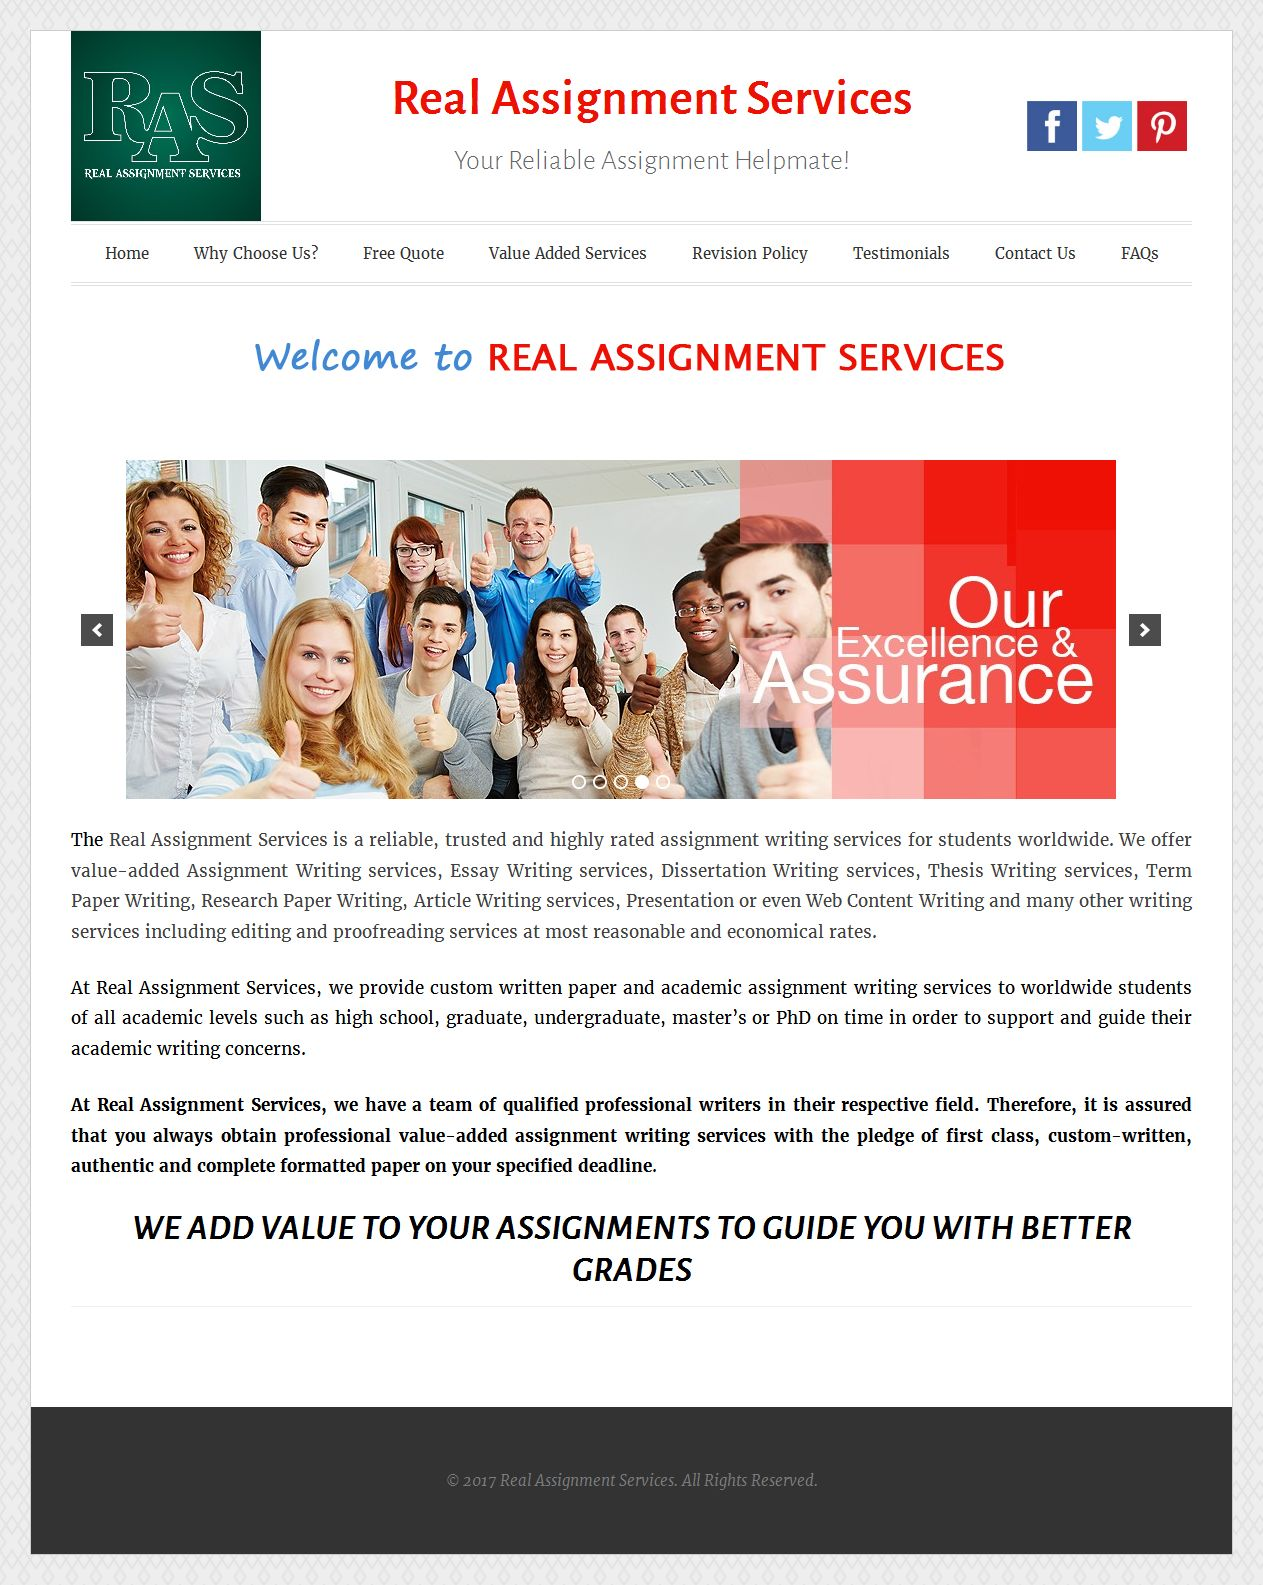 real assignment services inner page